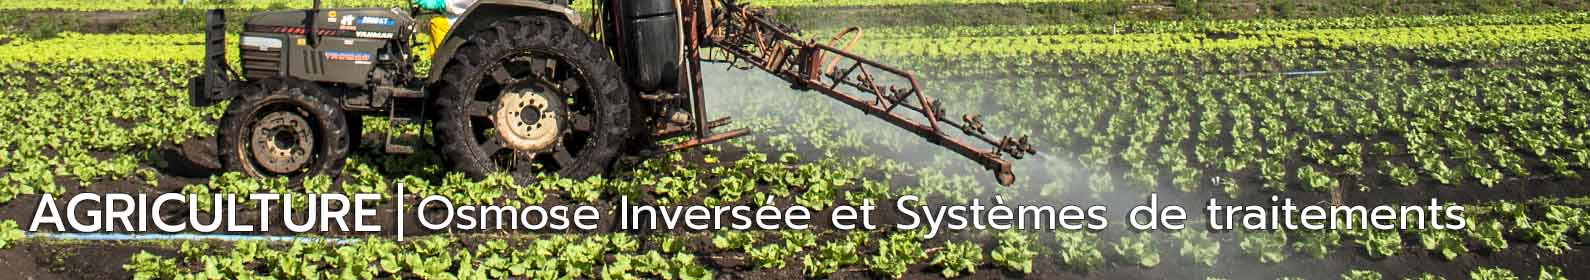 applications-de-traitement-de-l-eau-par-osmose-inverse-agriculture.jpg